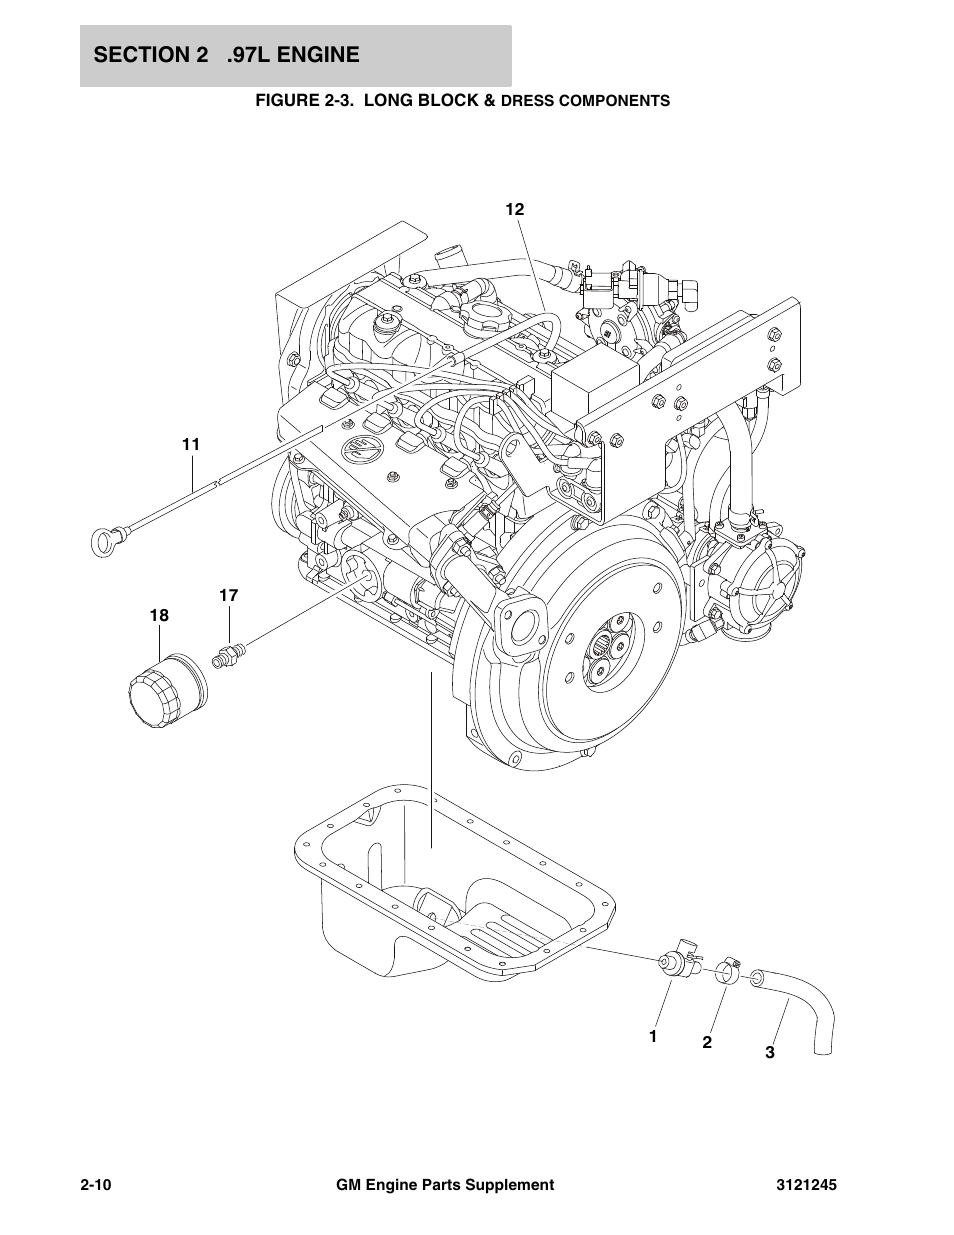 Figure 2 3 Long Block Dress Components Jlg Gm Engine Diagram Is A Of Supplements User Manual Page 18 100